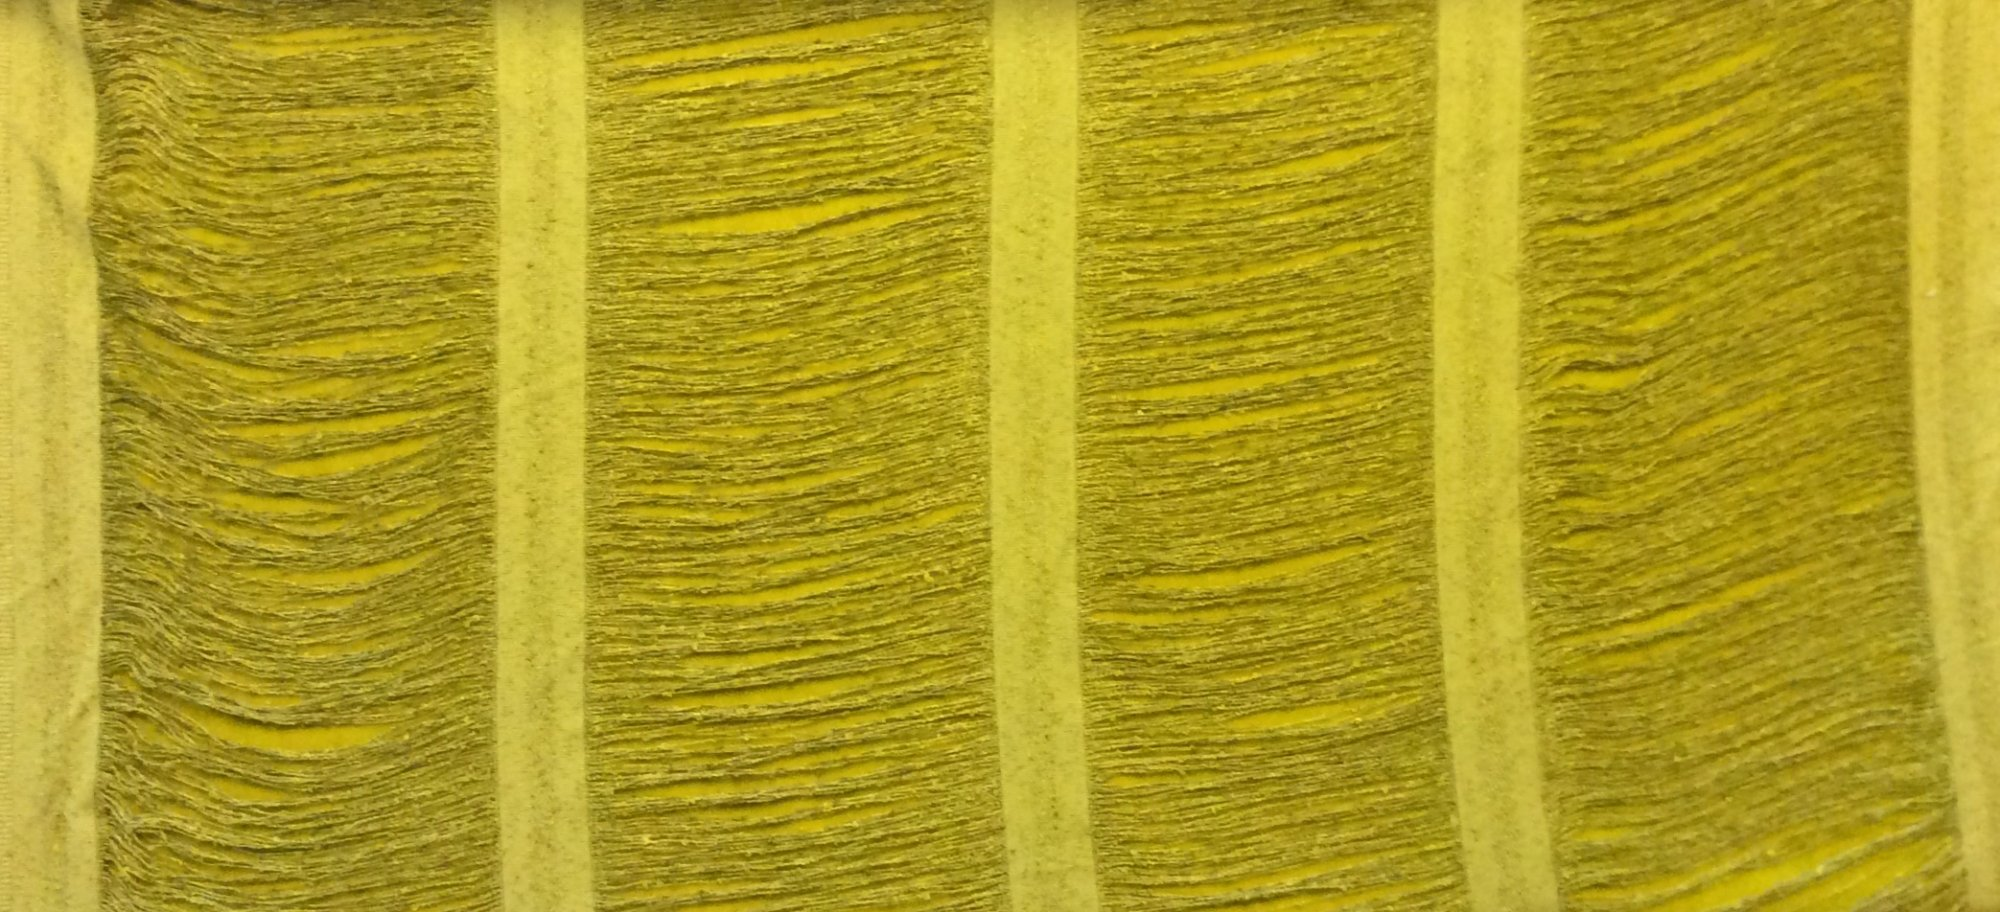 True Vintage Chartreuse Yellow Green Austrian String Lace Blind Curtain Home Decor Fabric By the Yard TRVG1